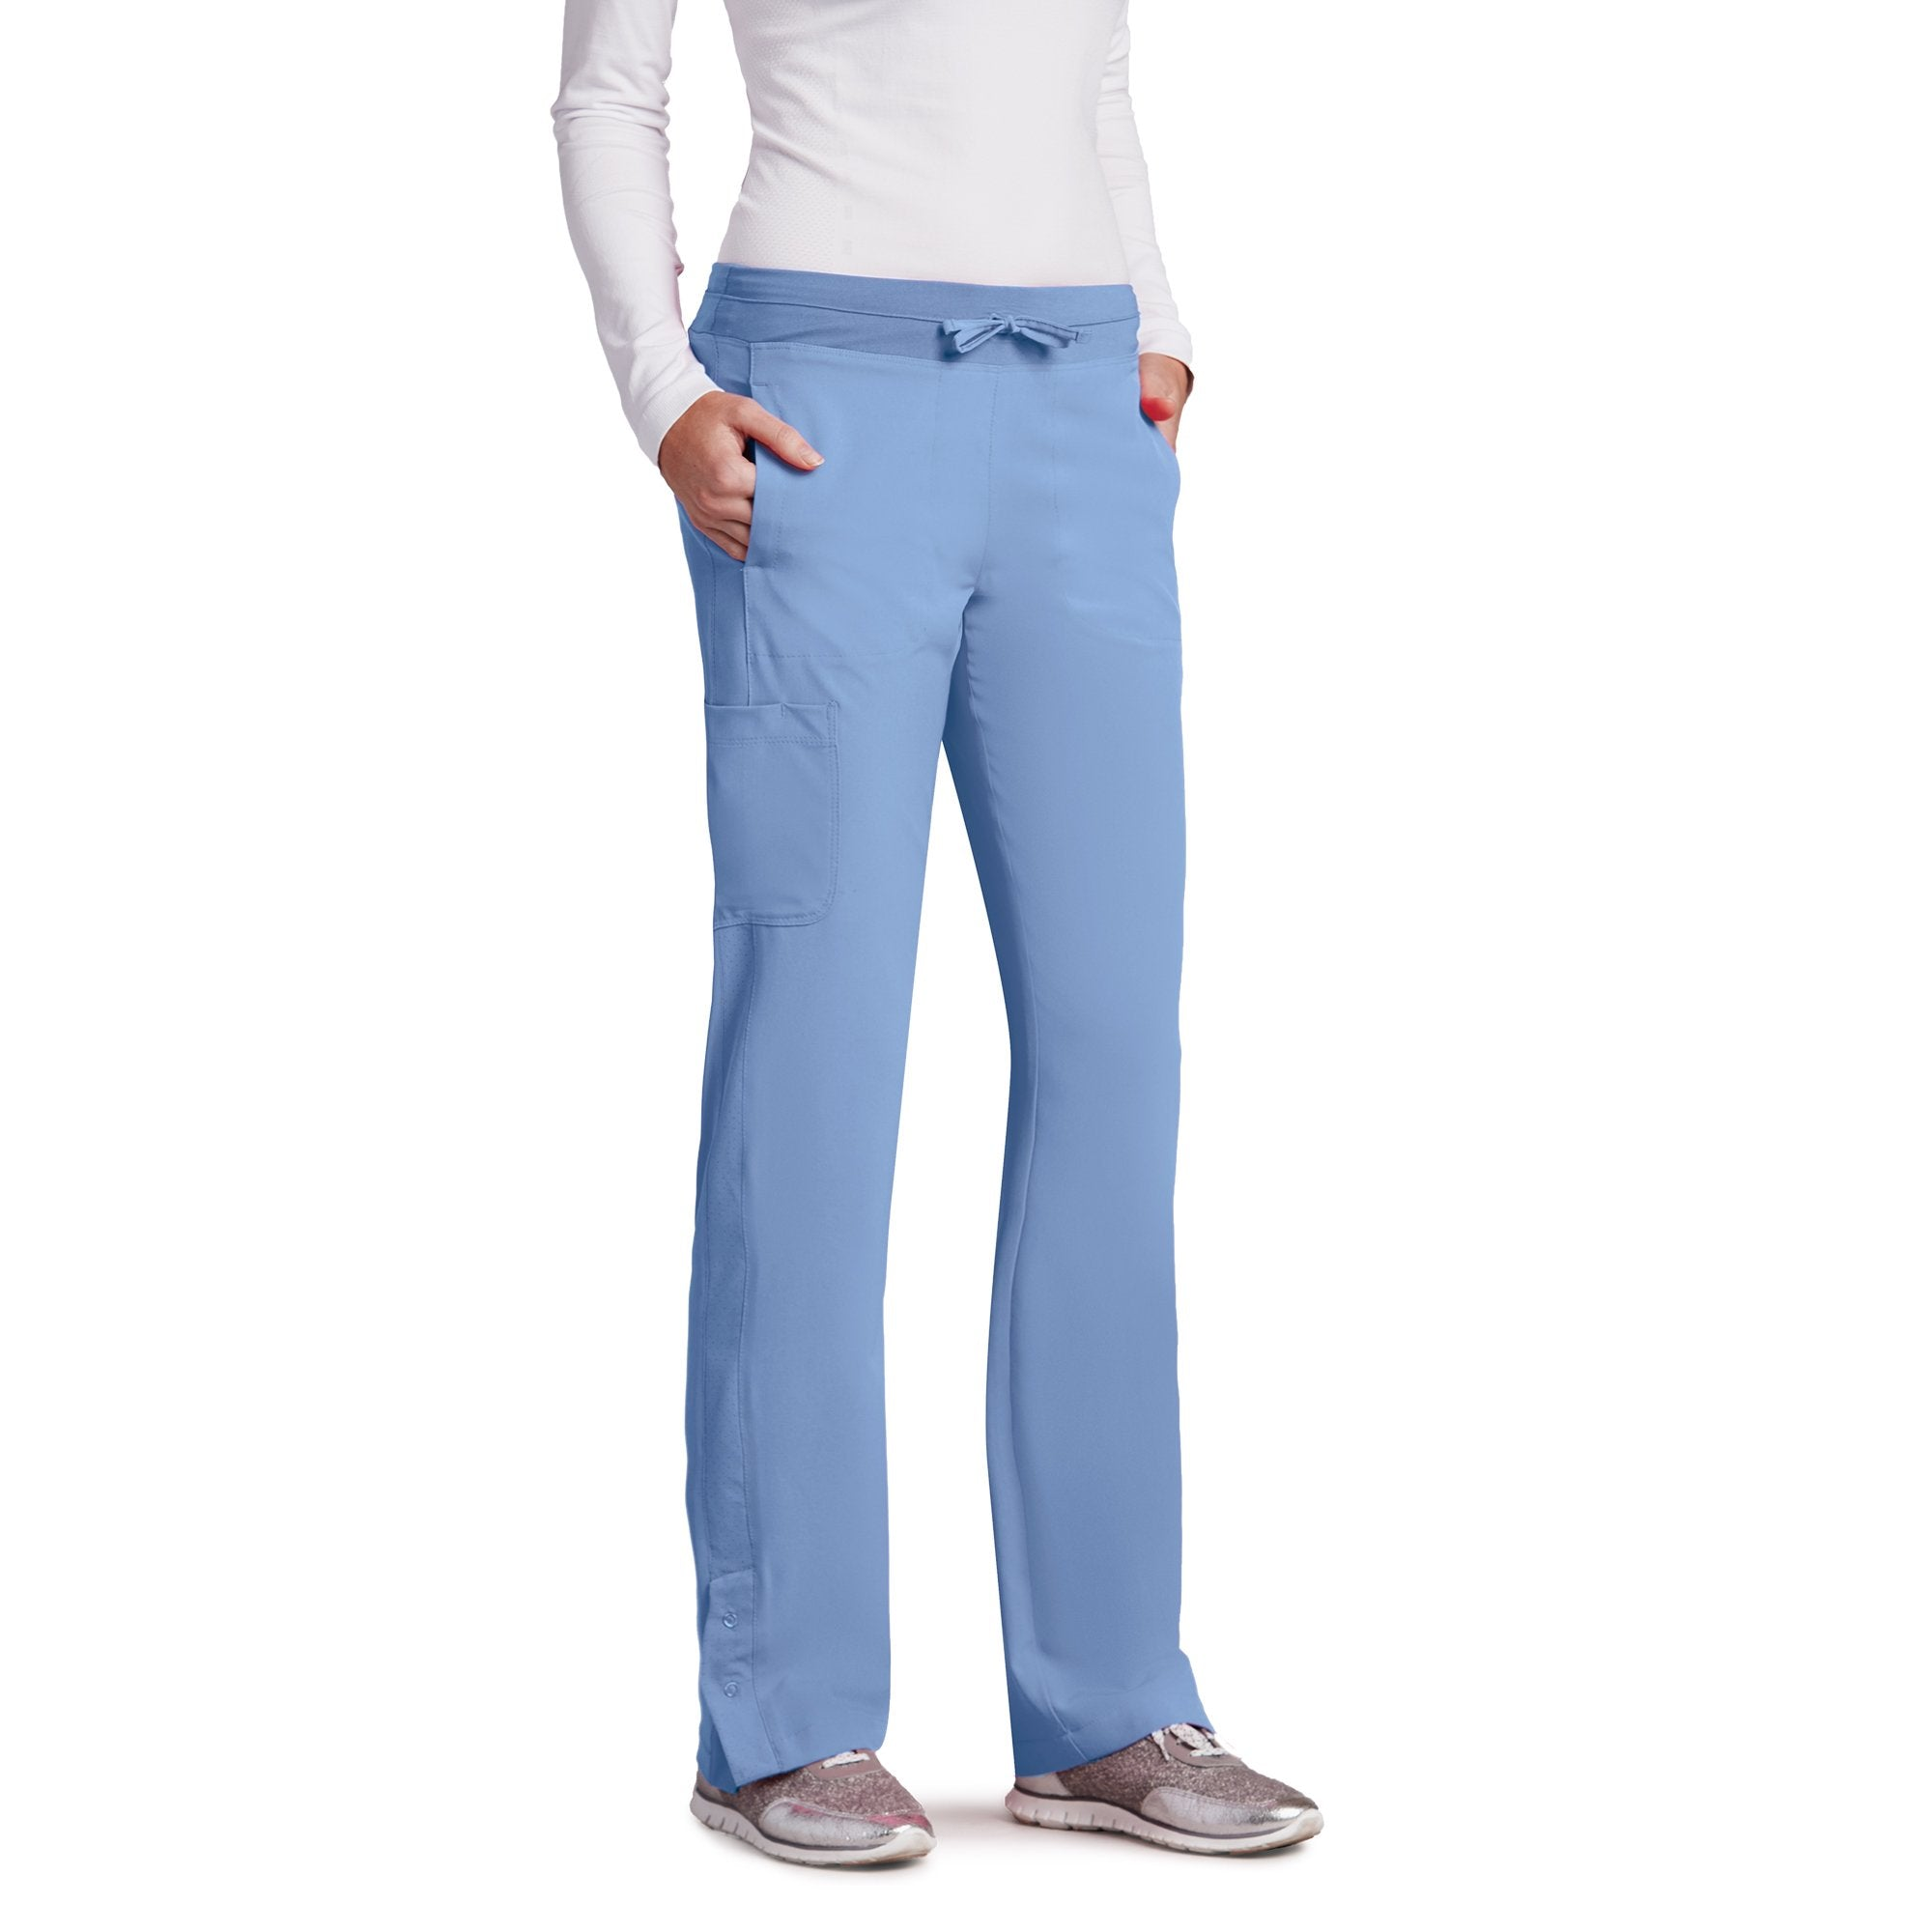 Barco One 5205 Petite 4-Pocket Cargo Track Pant